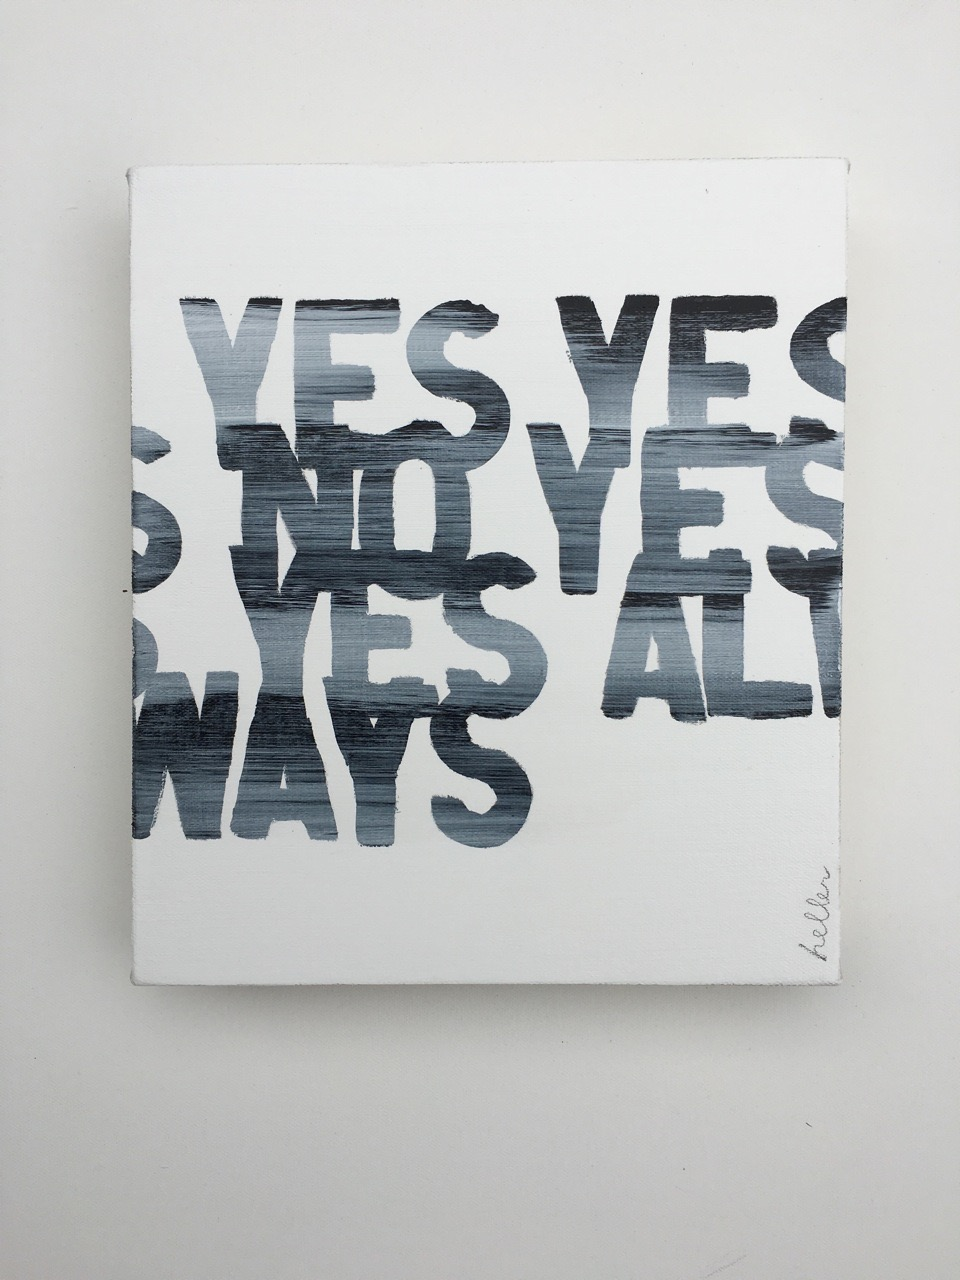 Matthew Heller  , Answers to Questions: Yes Yes No Yes Yes Always,  2016, Acrylic on canvas, 11 x 9 1/2 inches